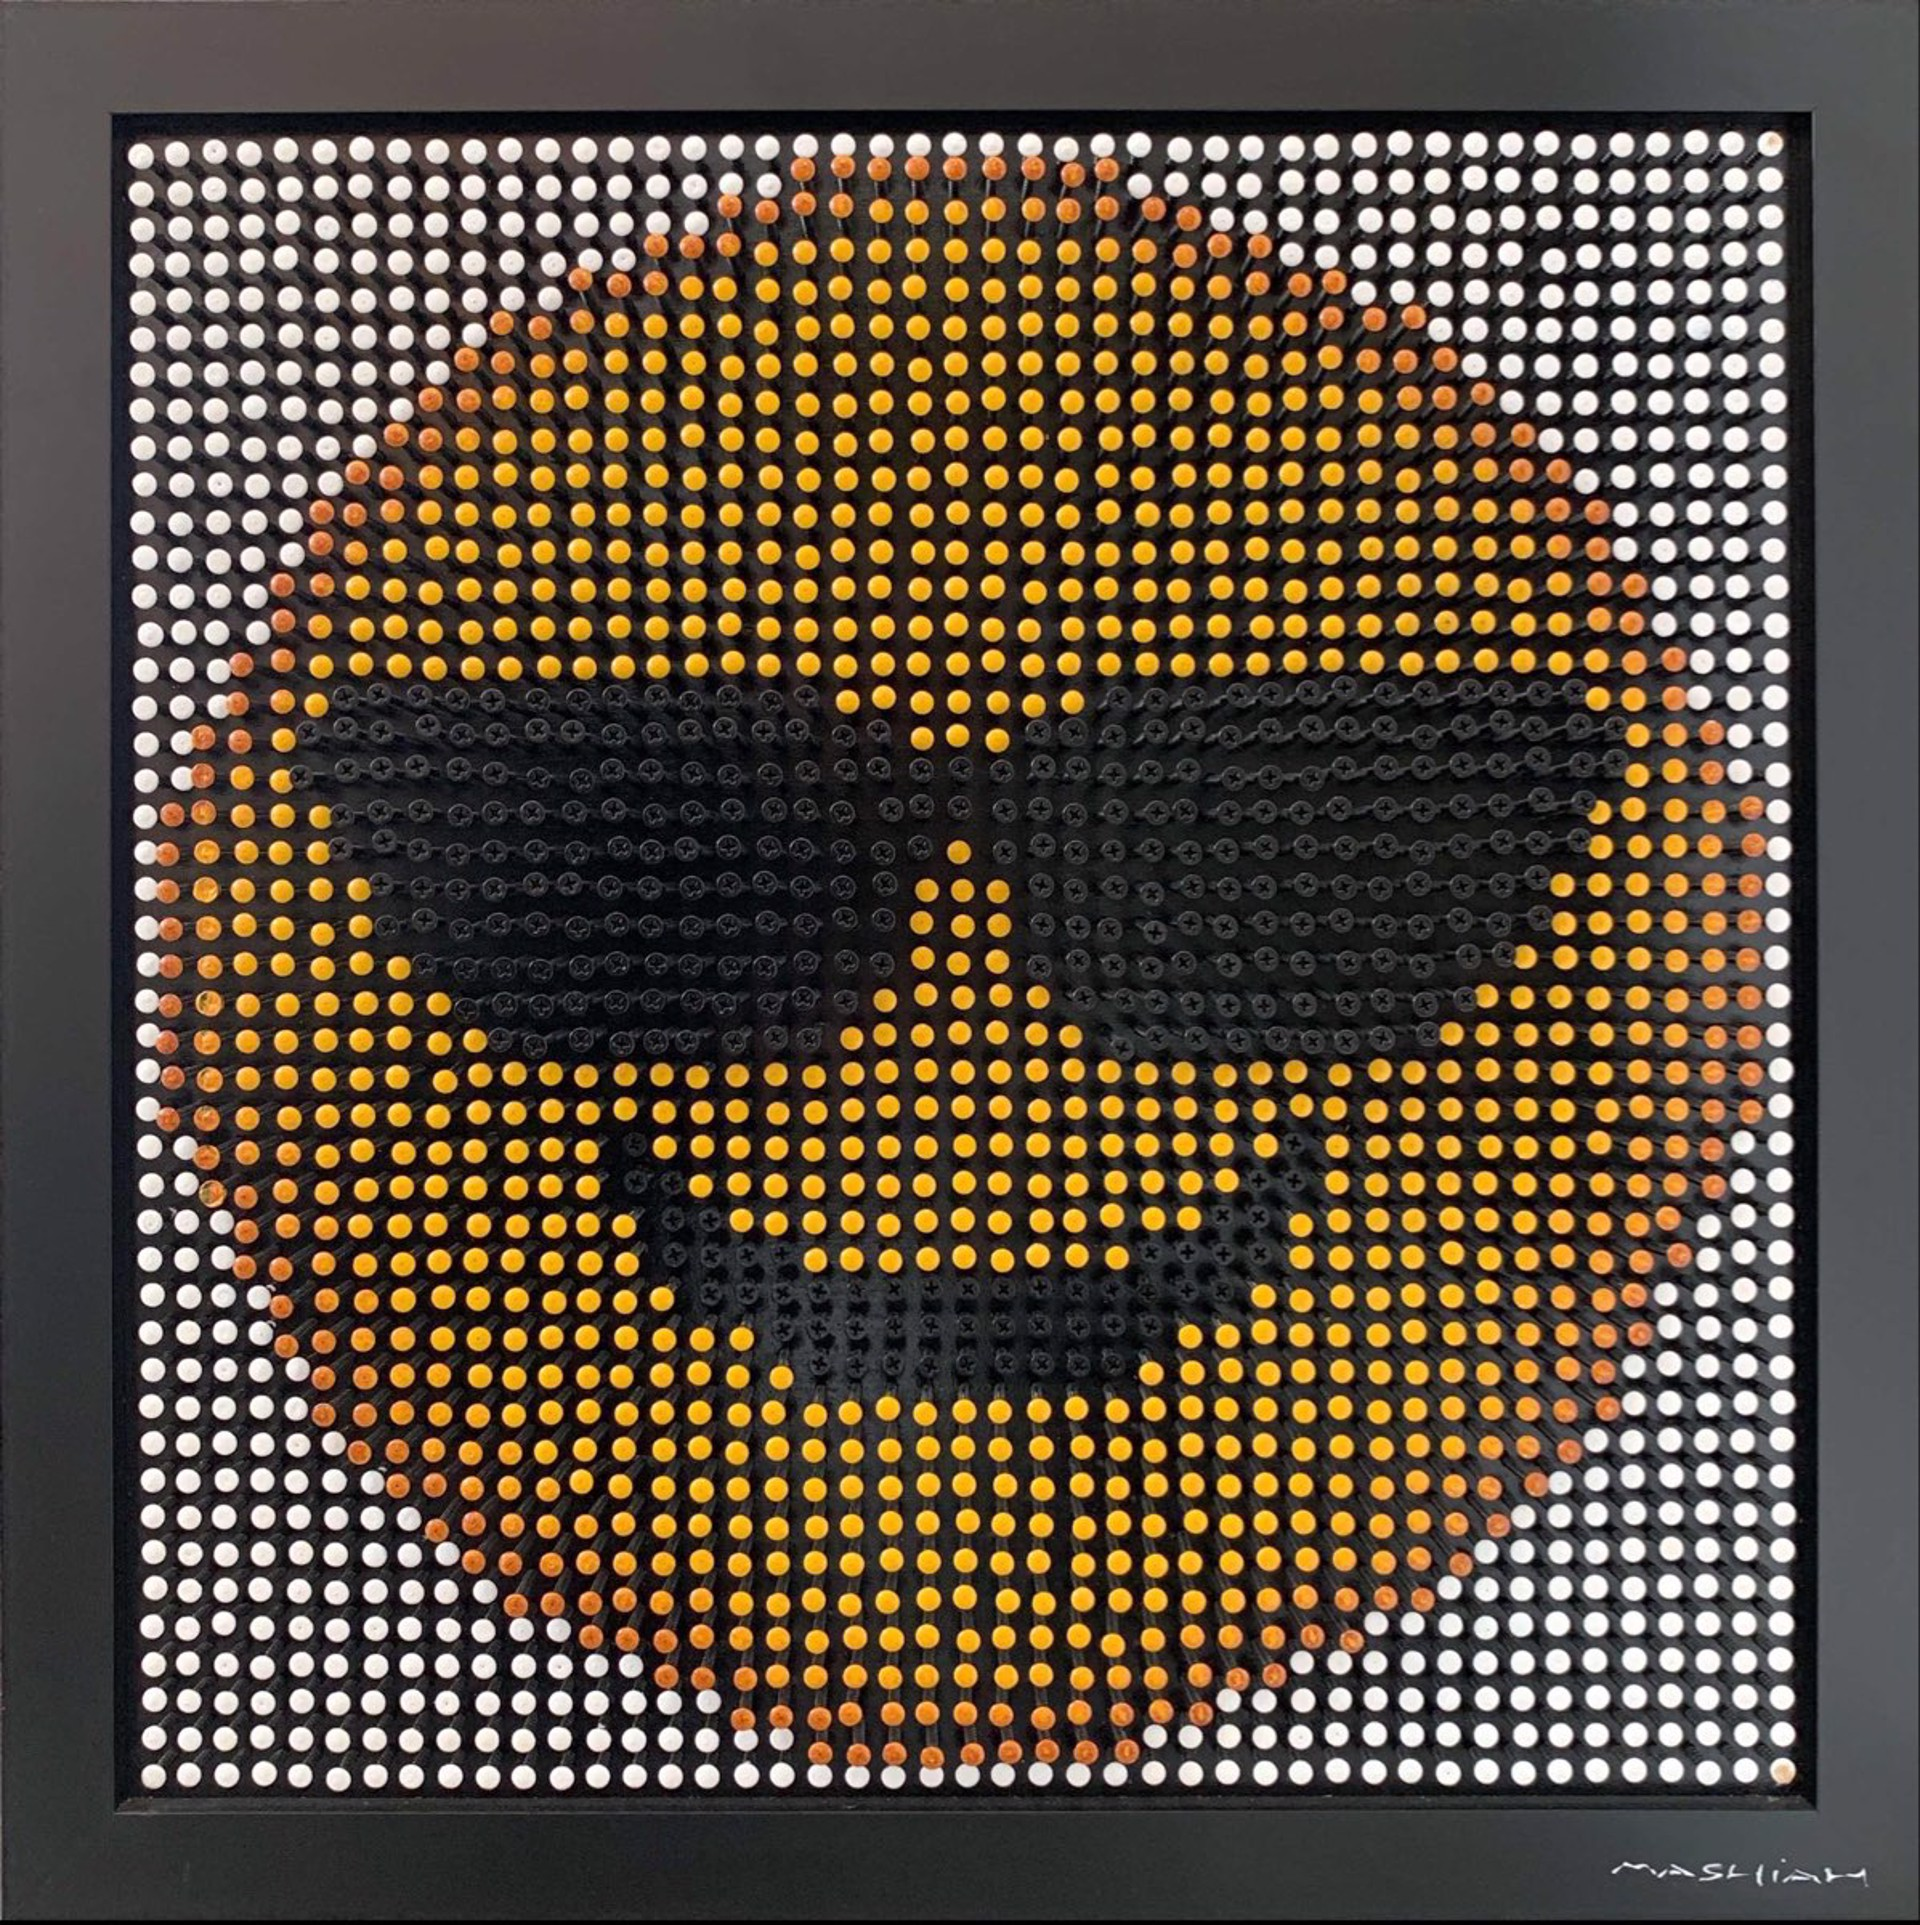 Emoji Screw Series - Smiling Face With Sunglasses by Efi Mashiah